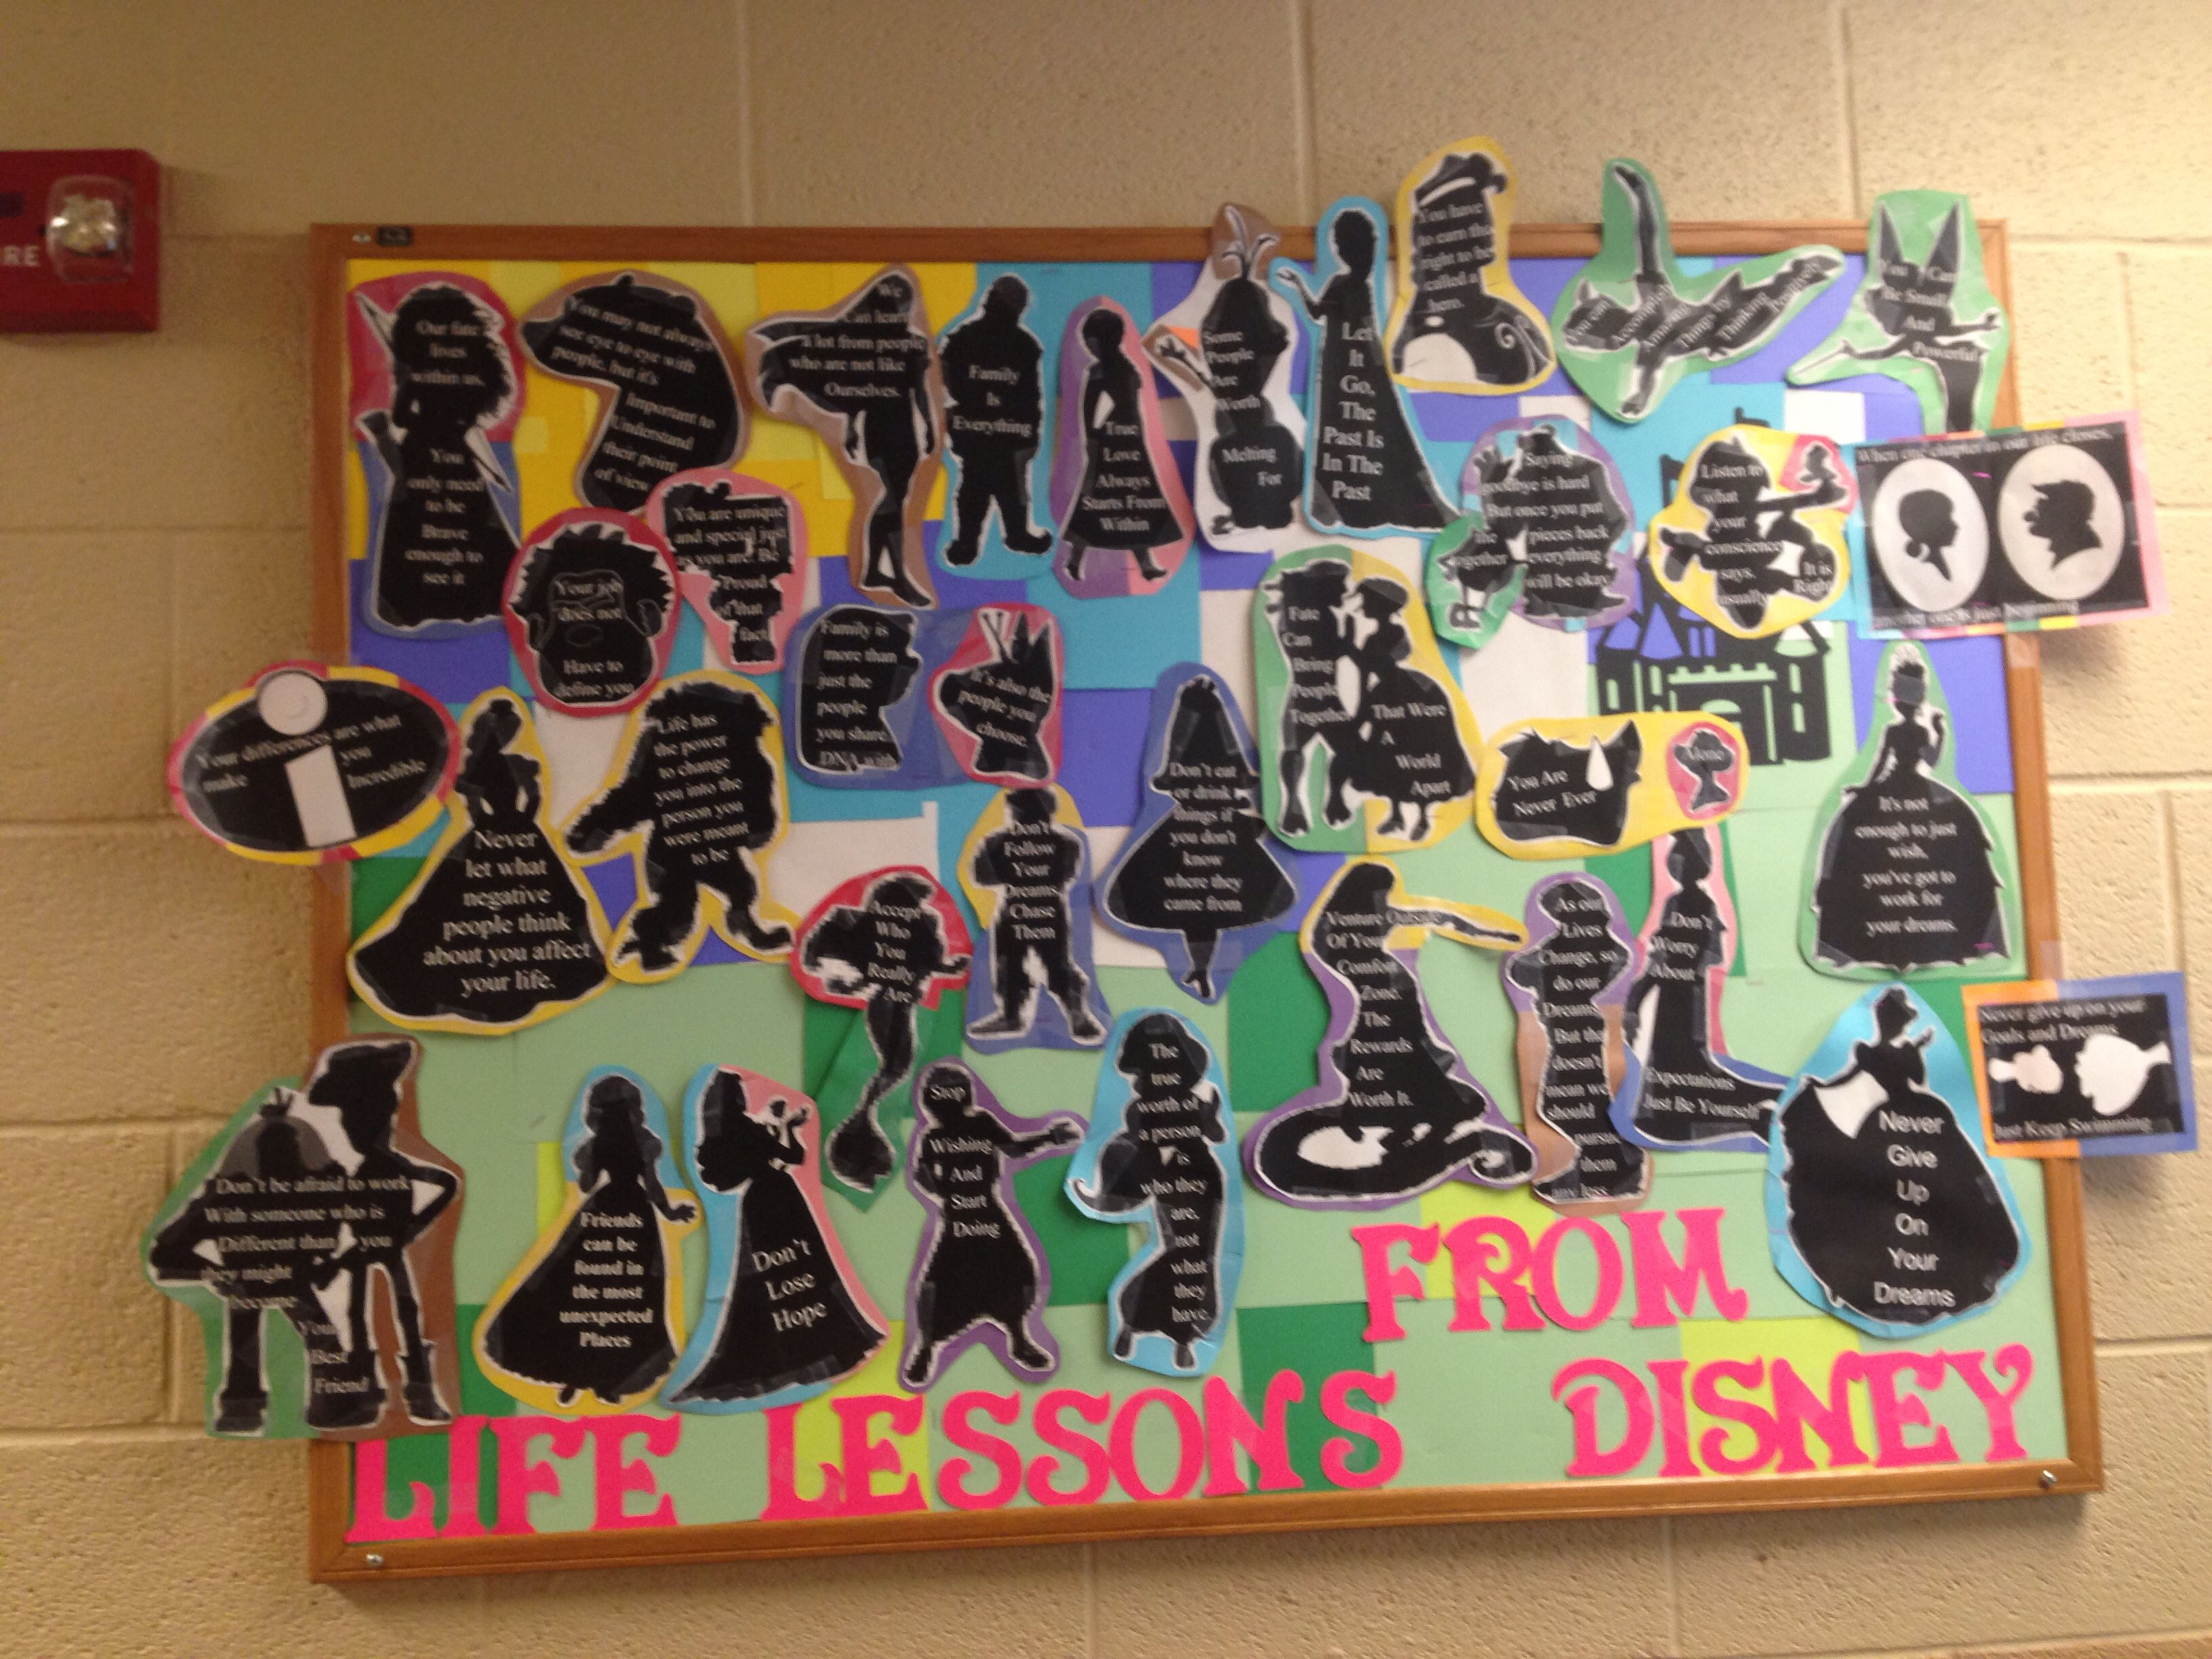 Life Lessons From Disney Ra Bulletin Board My Floor